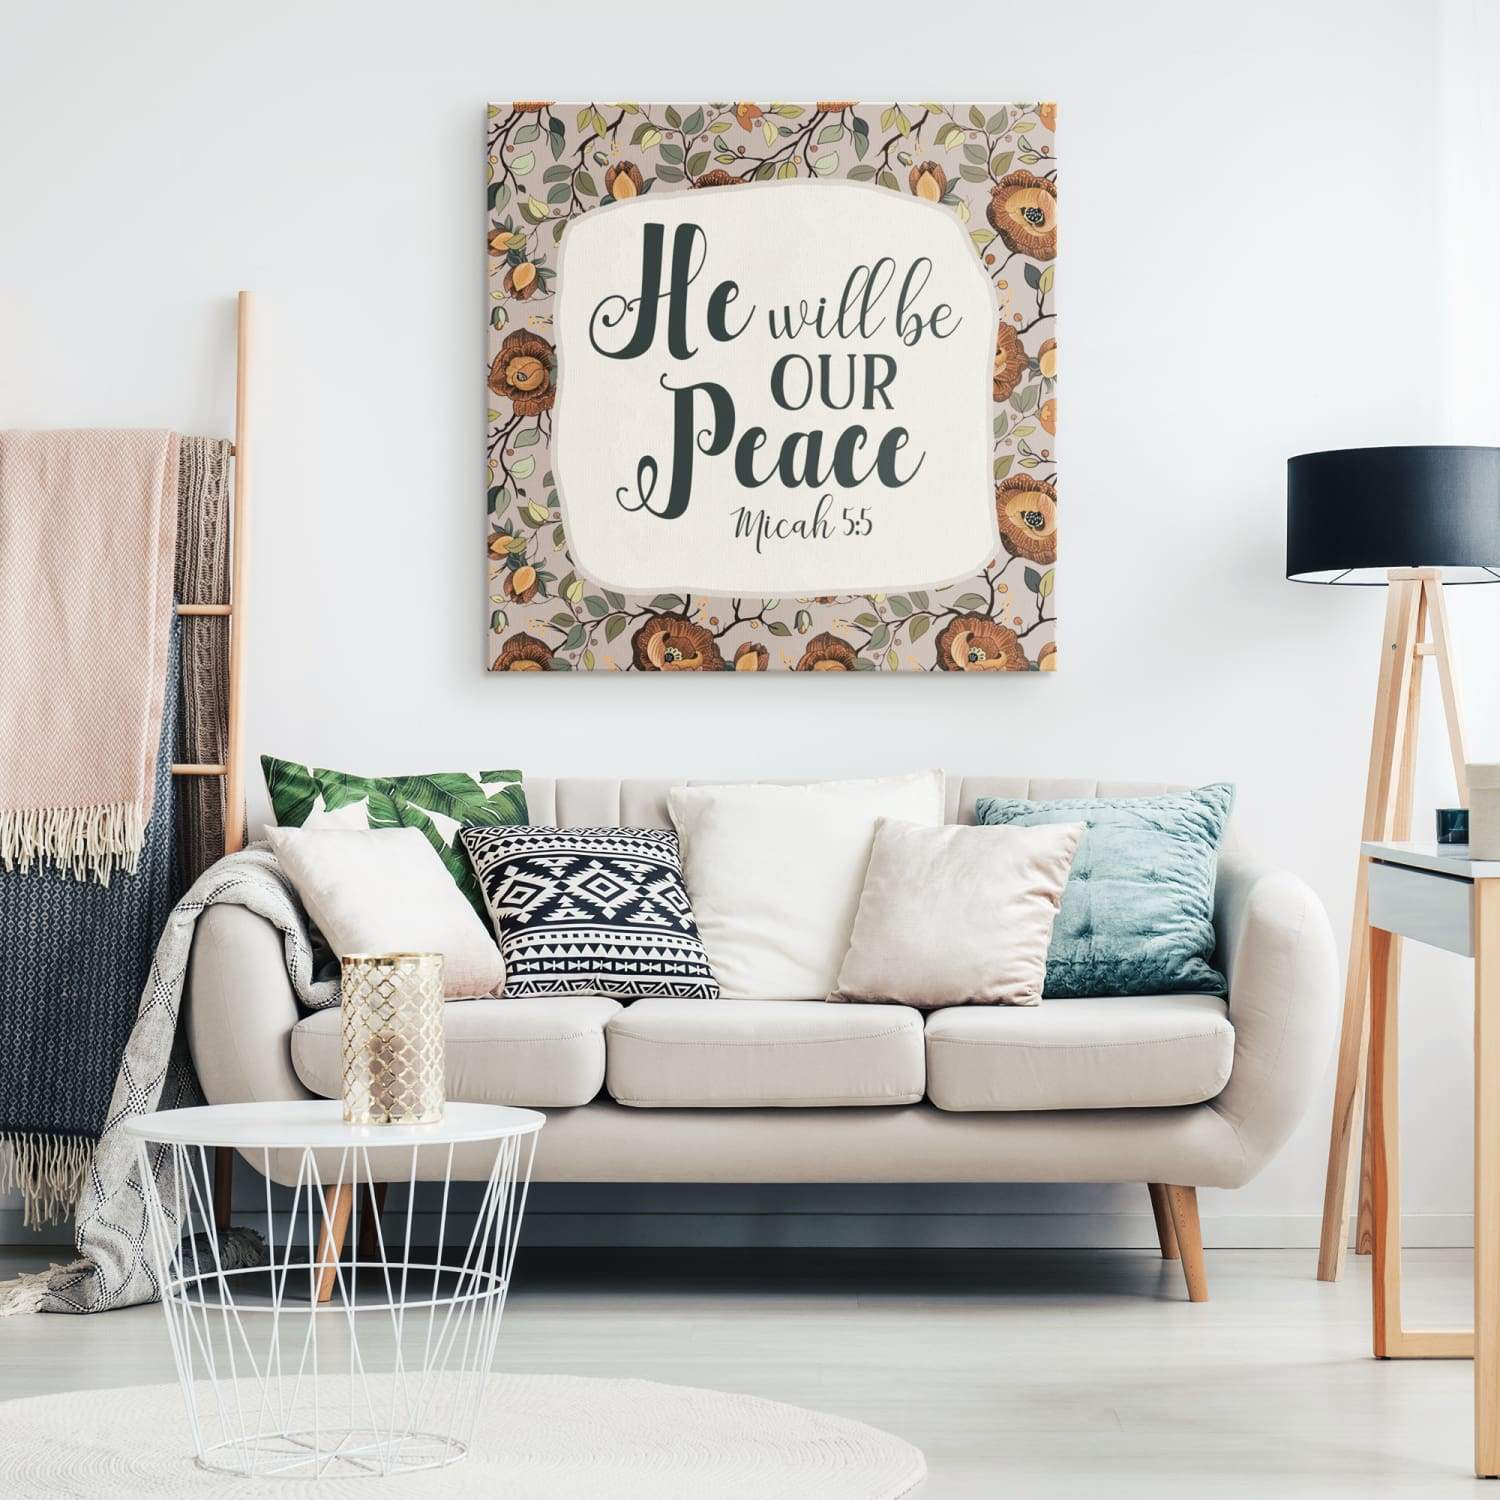 Micah 5:5 He will be our peace canvas wall art - GnWarriors Clothing